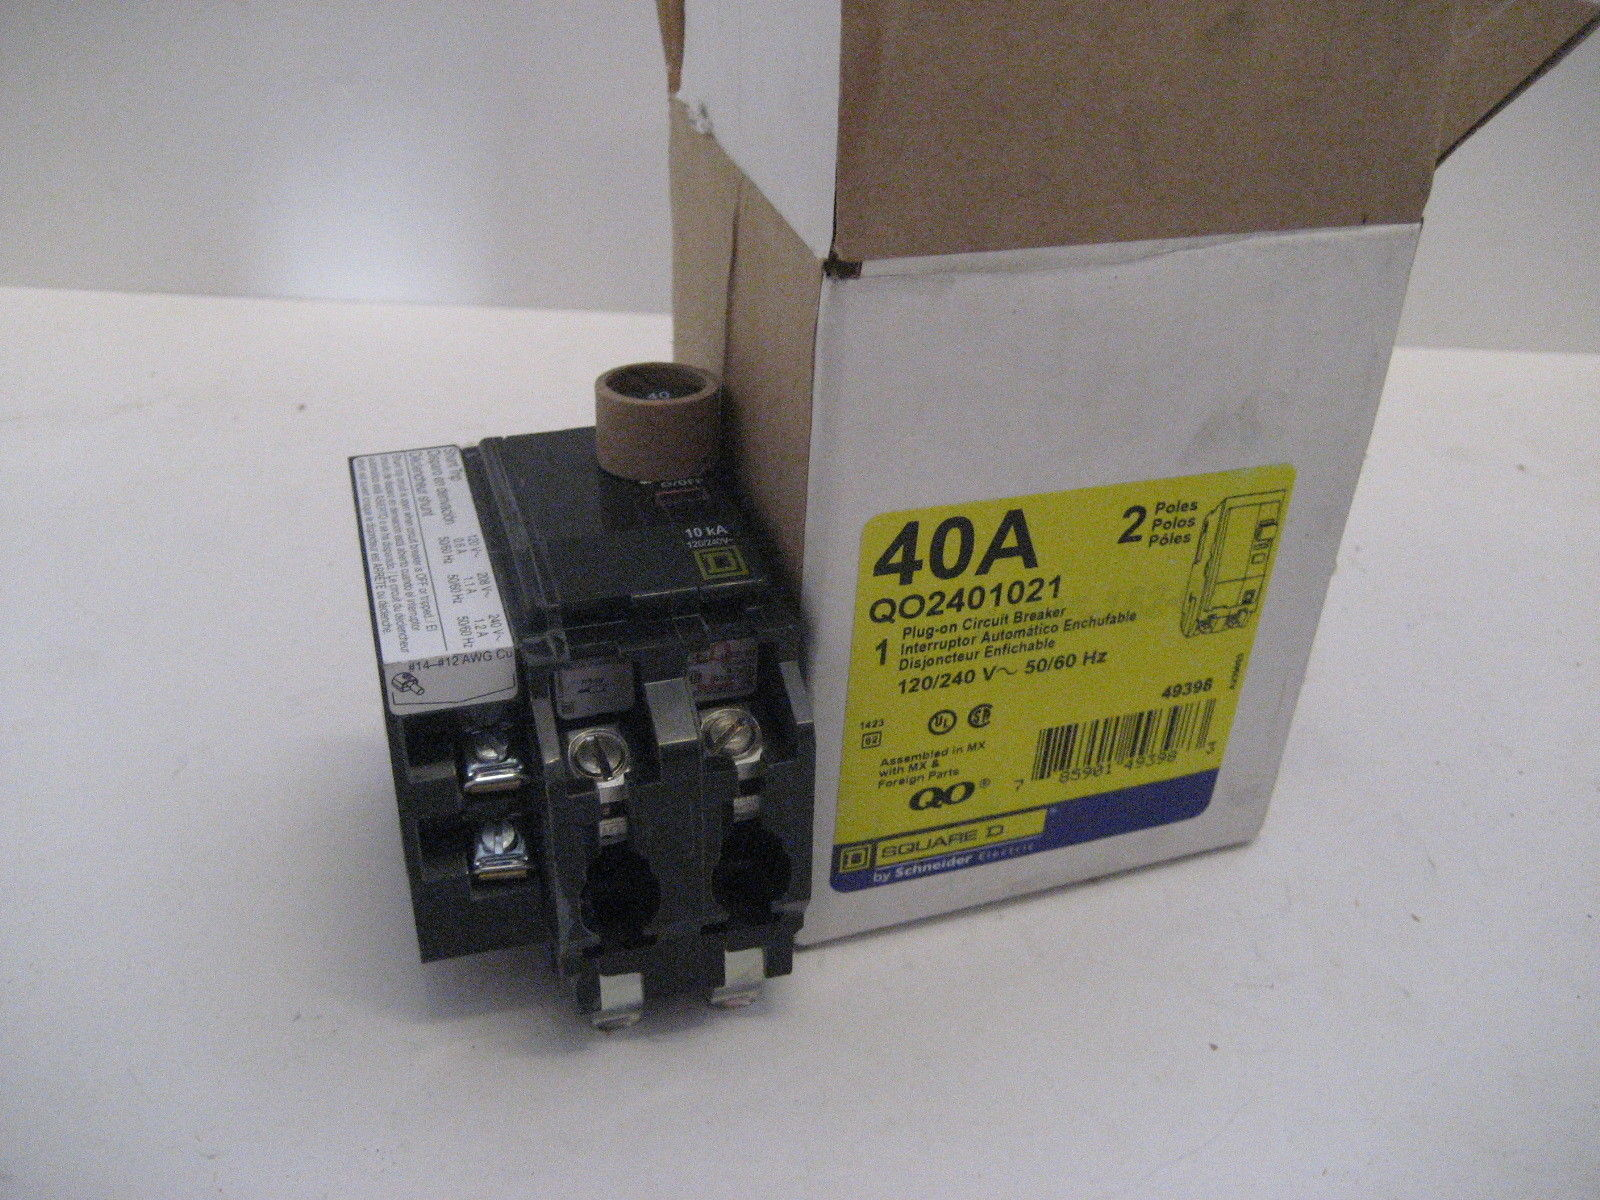 New In Box Square D Shunt Trip Breaker Qo2401021 Qo240 1021 Qo Trippingcircuitbreakerpaneljpg